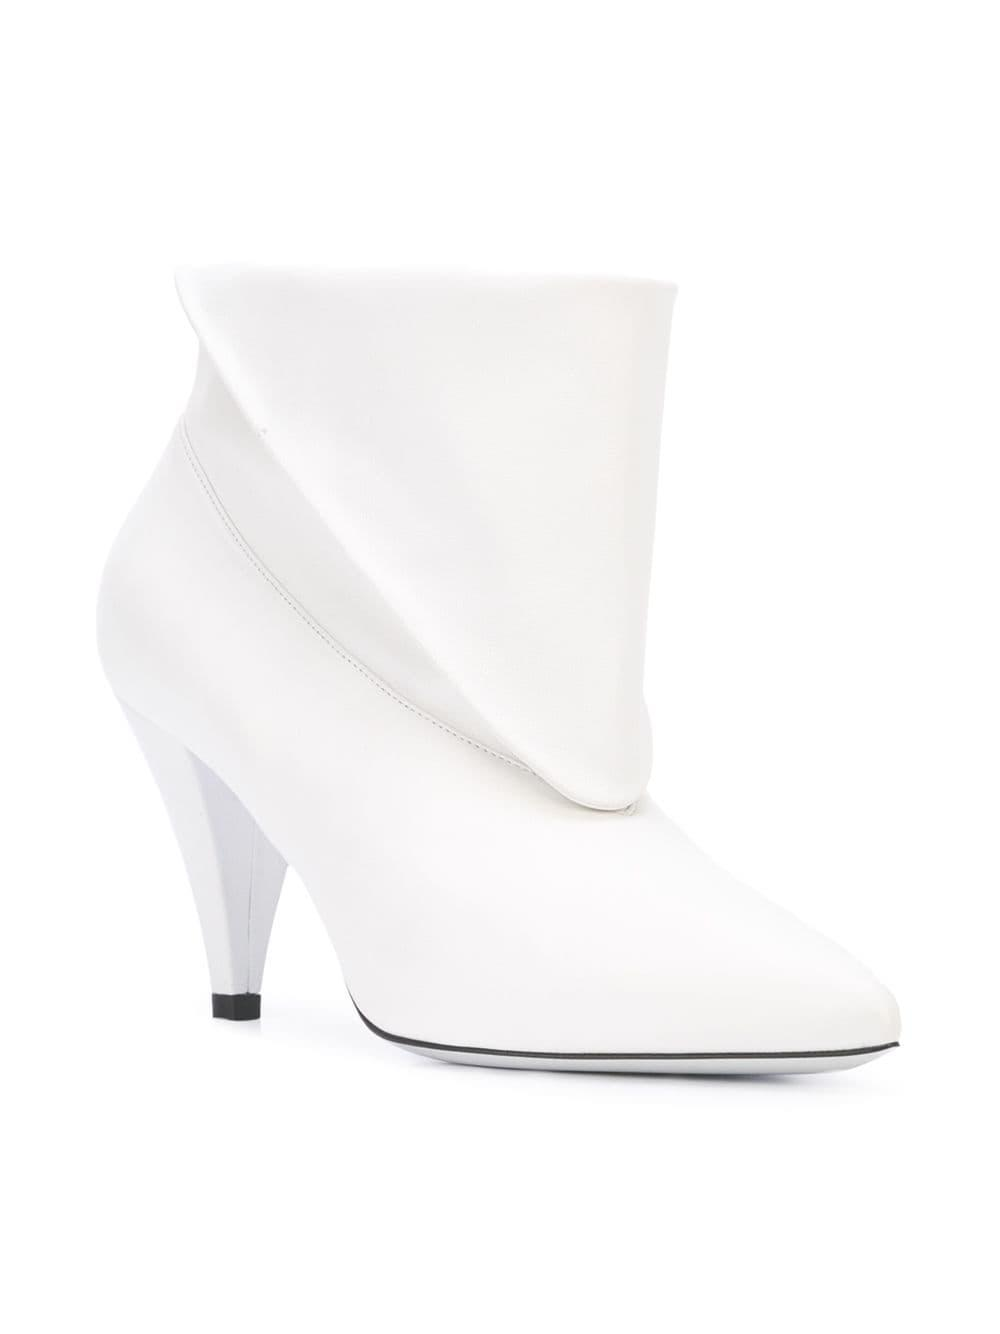 d5ace25f4941 Lyst - Givenchy Foldover Ankle Boots in White - Save 30%